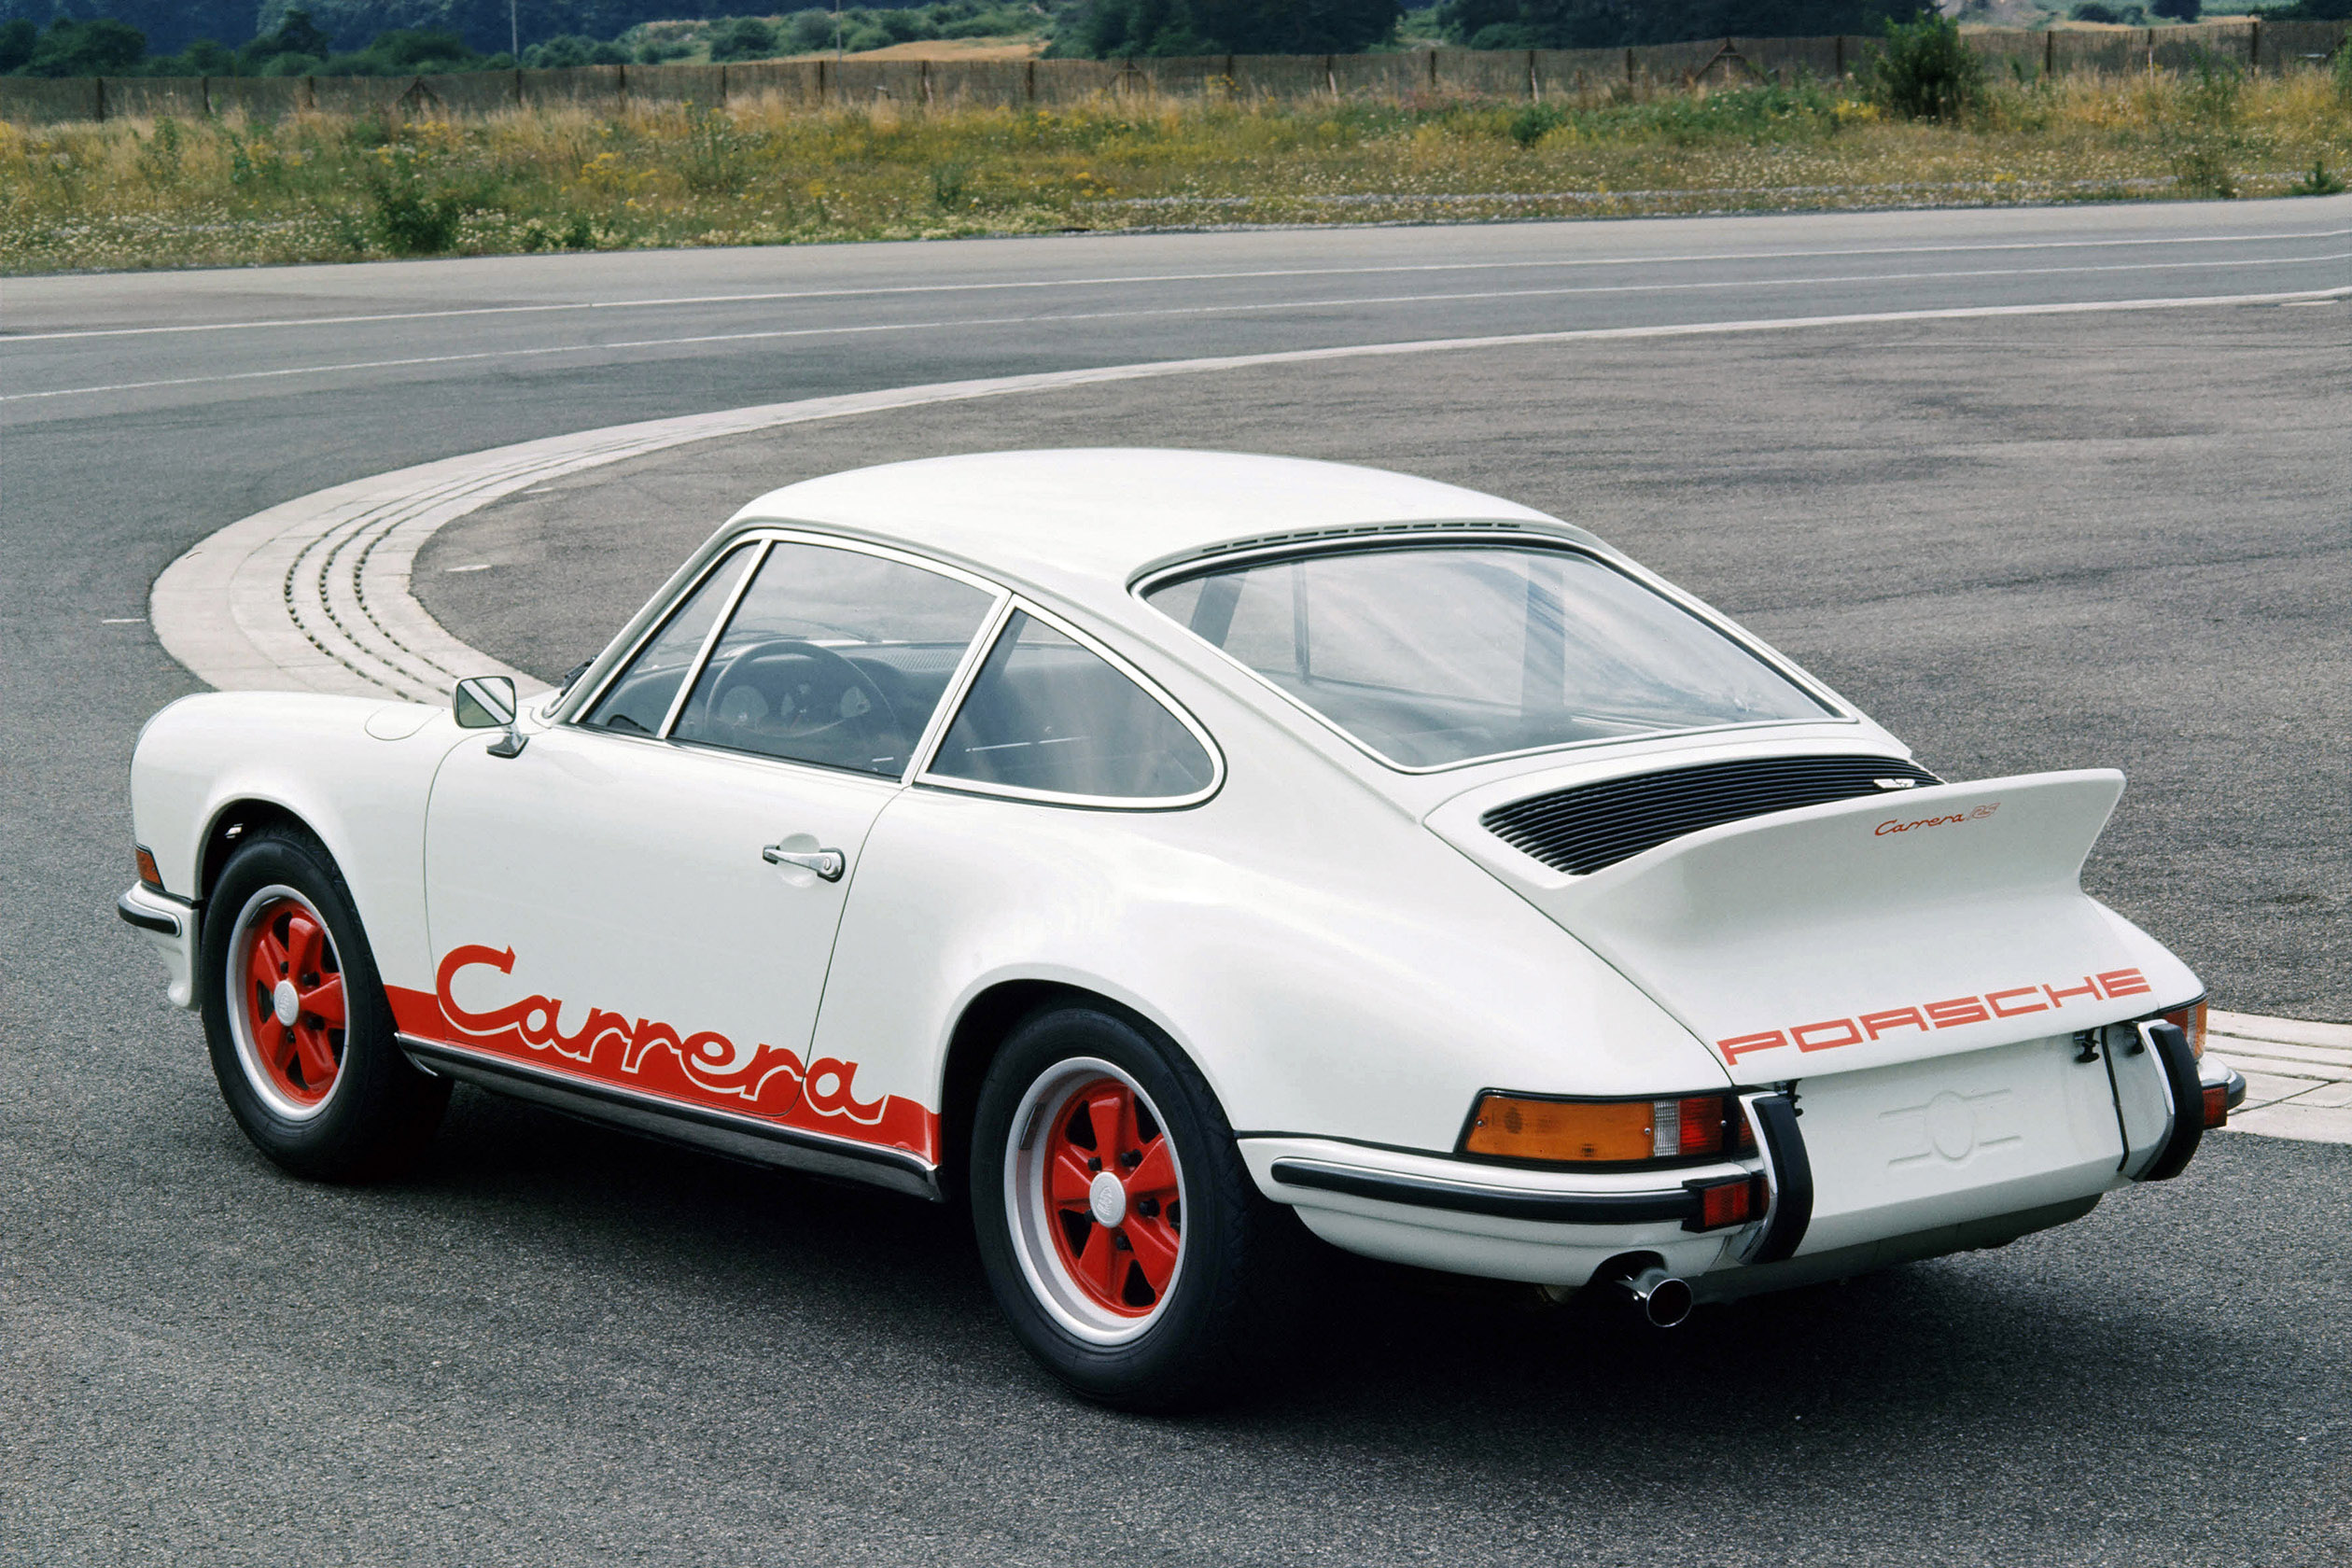 Porsche carrera rs 27 technical details history photos on porsche carrera rs 27 photo 11 vanachro Choice Image